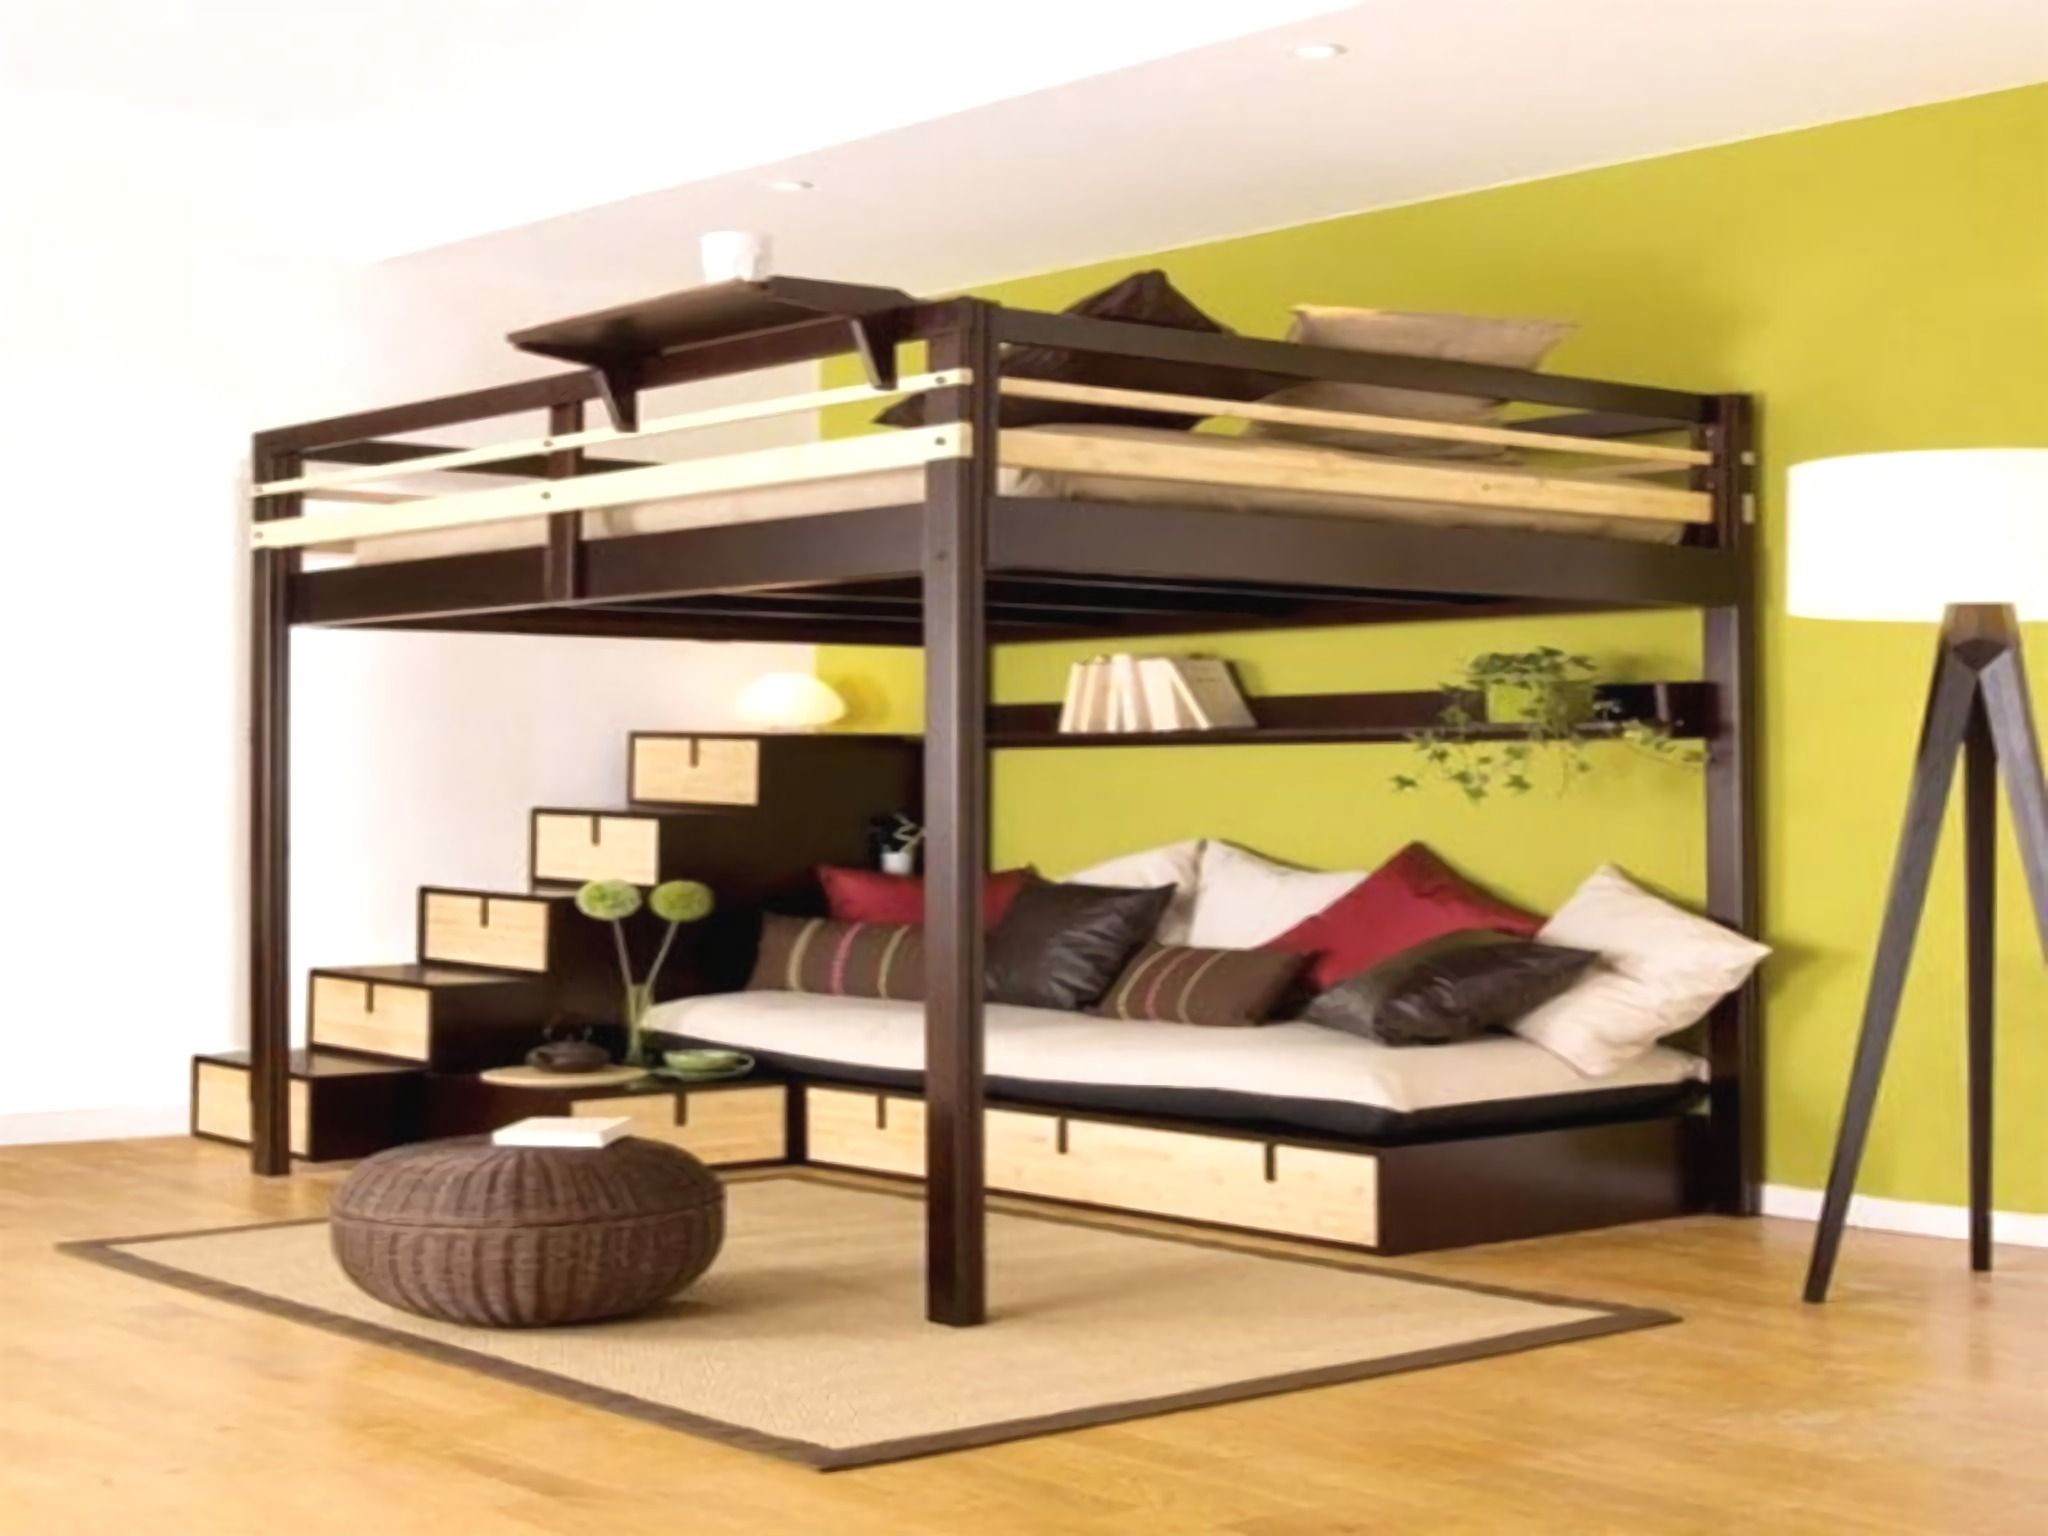 Lit Mezzanine Double Adulte lit mezzanine ikea | cool loft beds, loft bed plans, bedroom